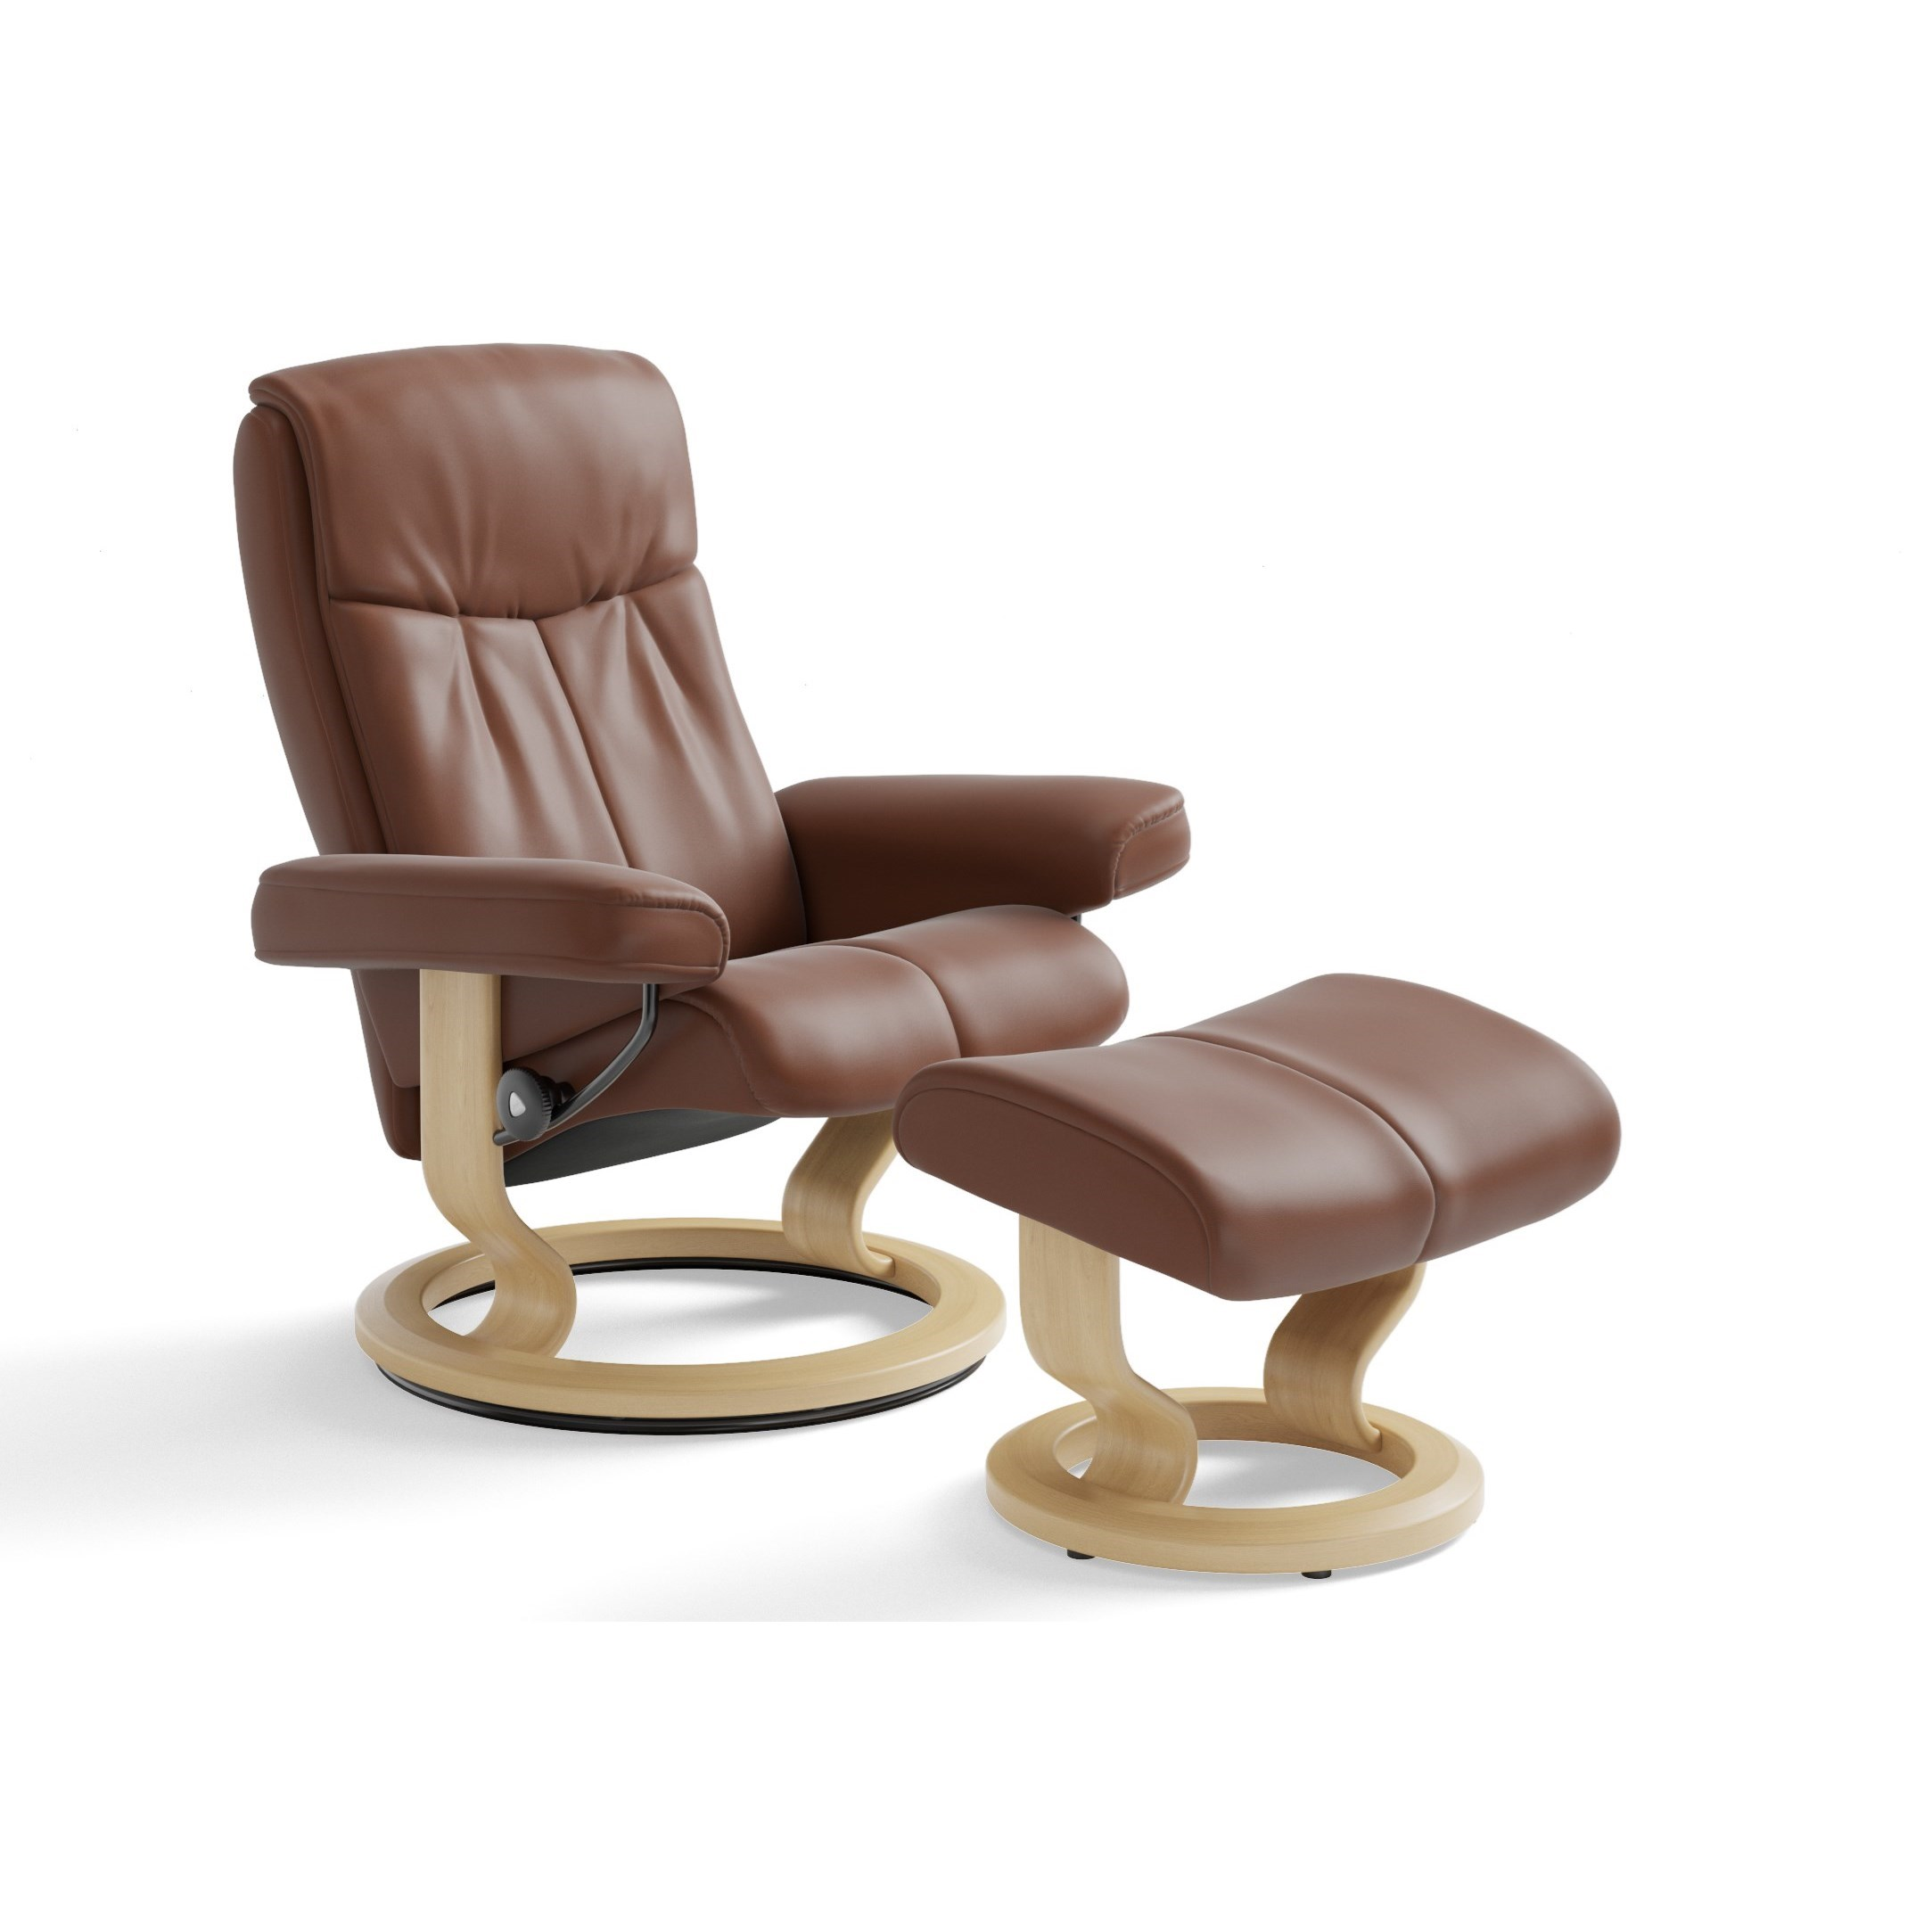 Stressless by Ekornes Stressless Peace Classic Reclining